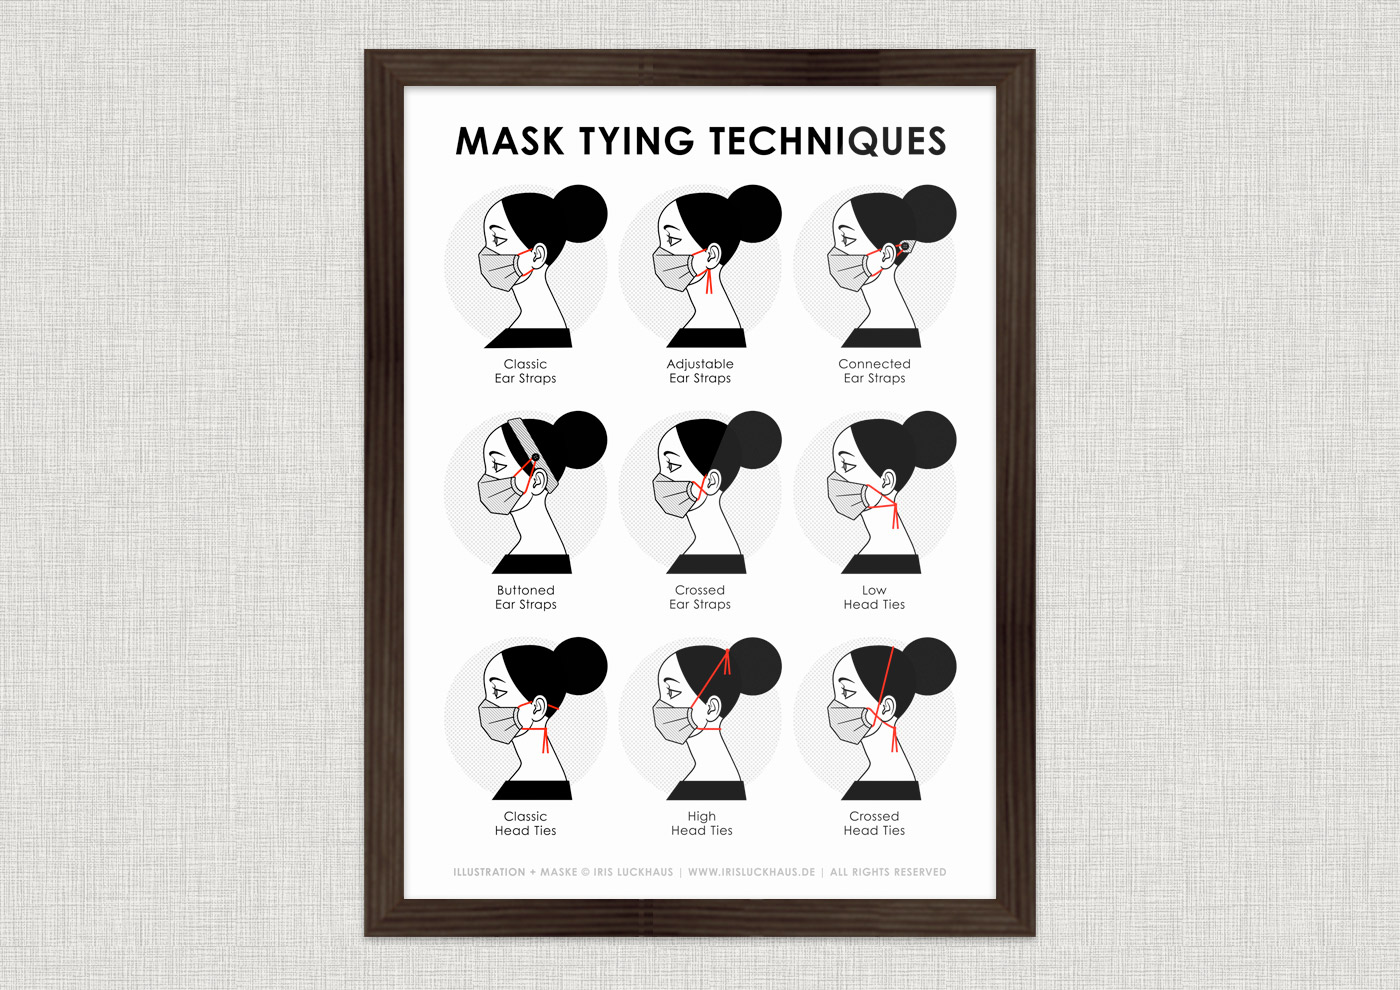 Infographics about mask tying techniques, showing by the example of the hybrid cloth mask pattern several ways to fasten a community mask, cloth mask or fabric face mask with ear straps, elastics or head ties and knots, by Iris Luckhaus